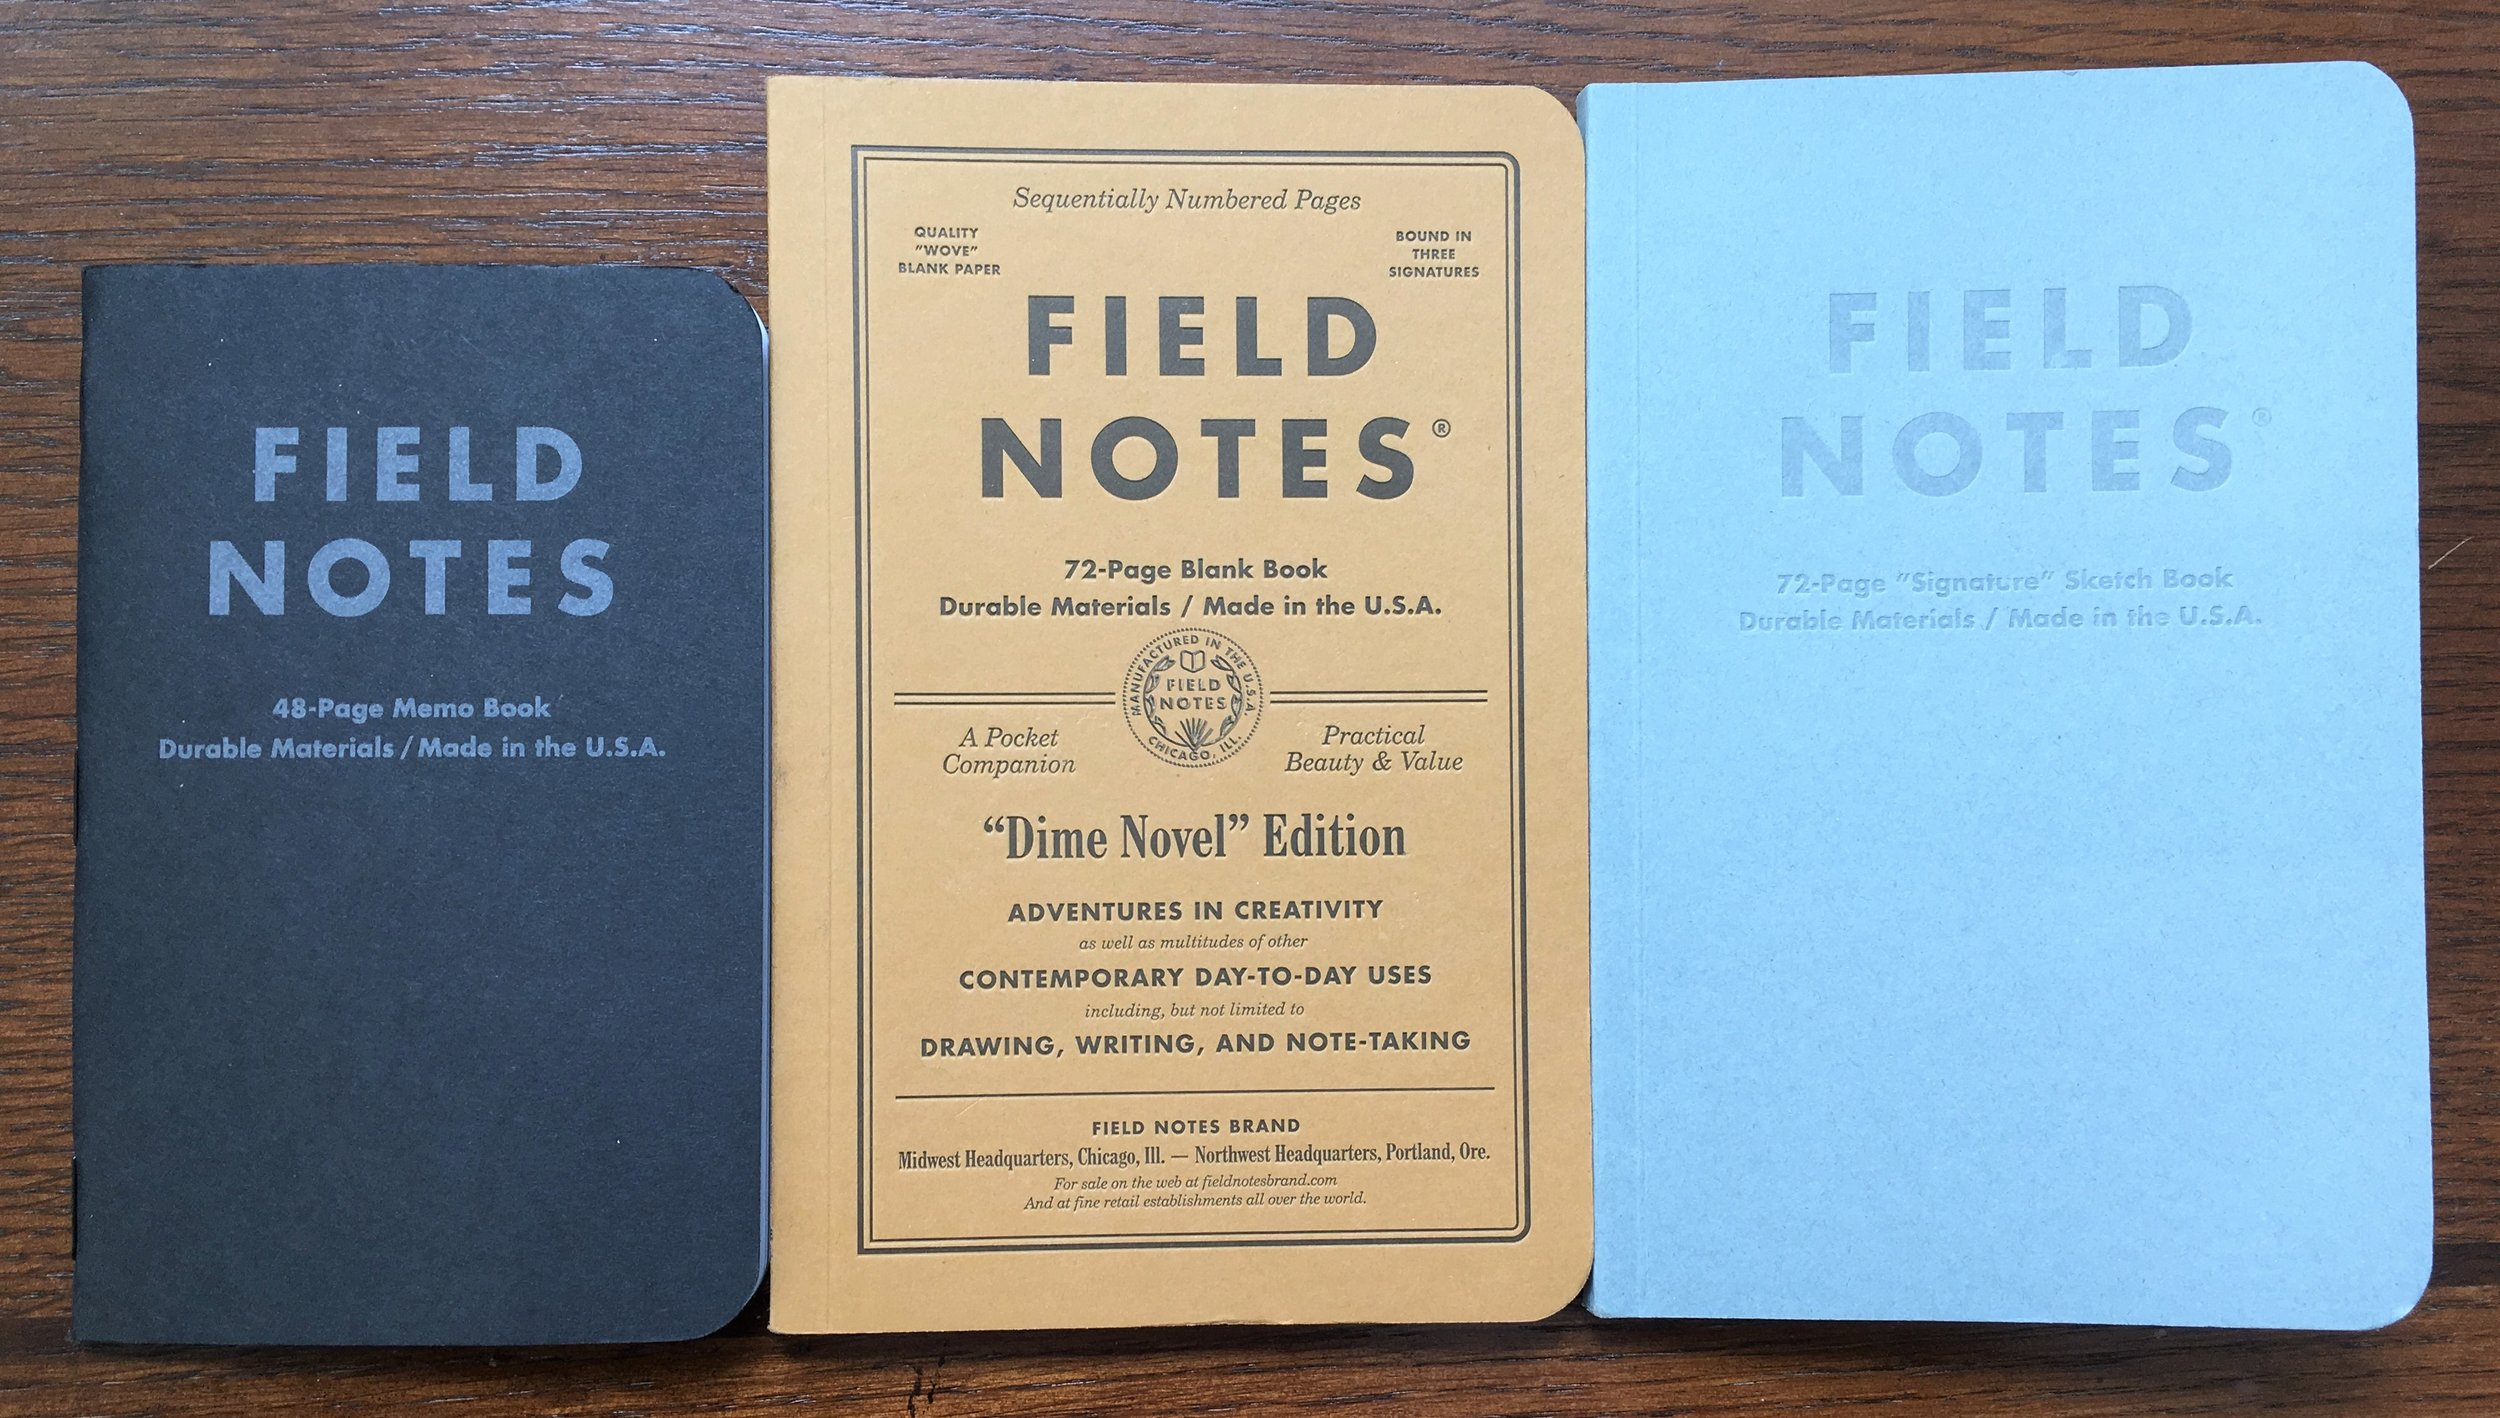 Field Notes Signature Sketch Book Comparison